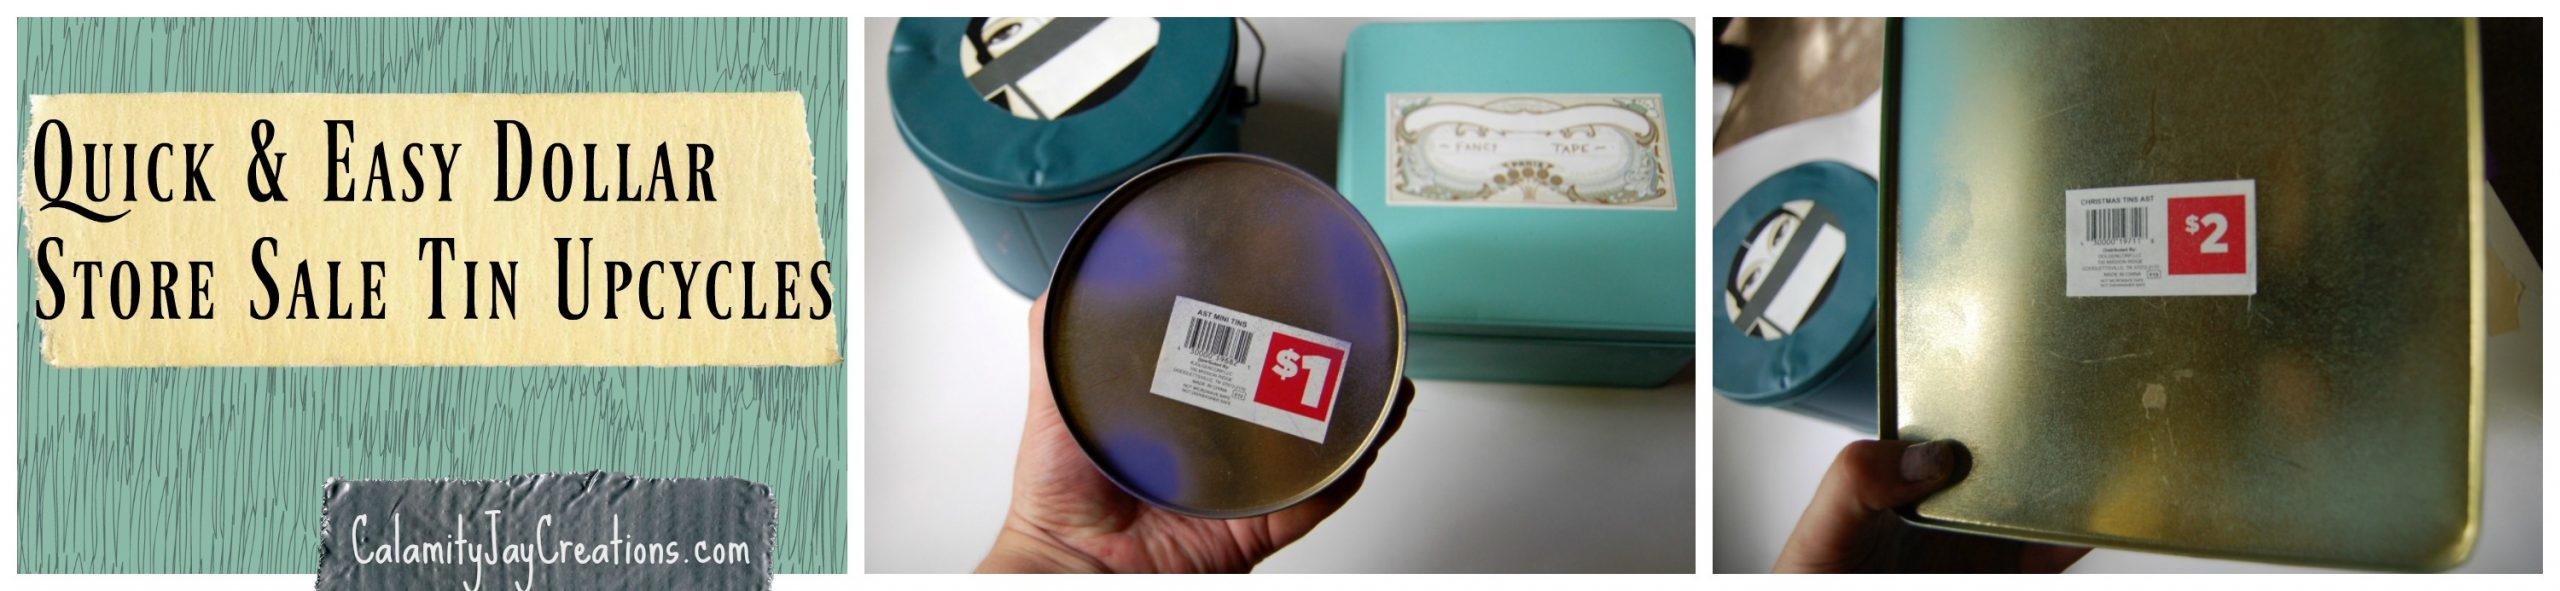 sale cookie tin upcycle redo reuse